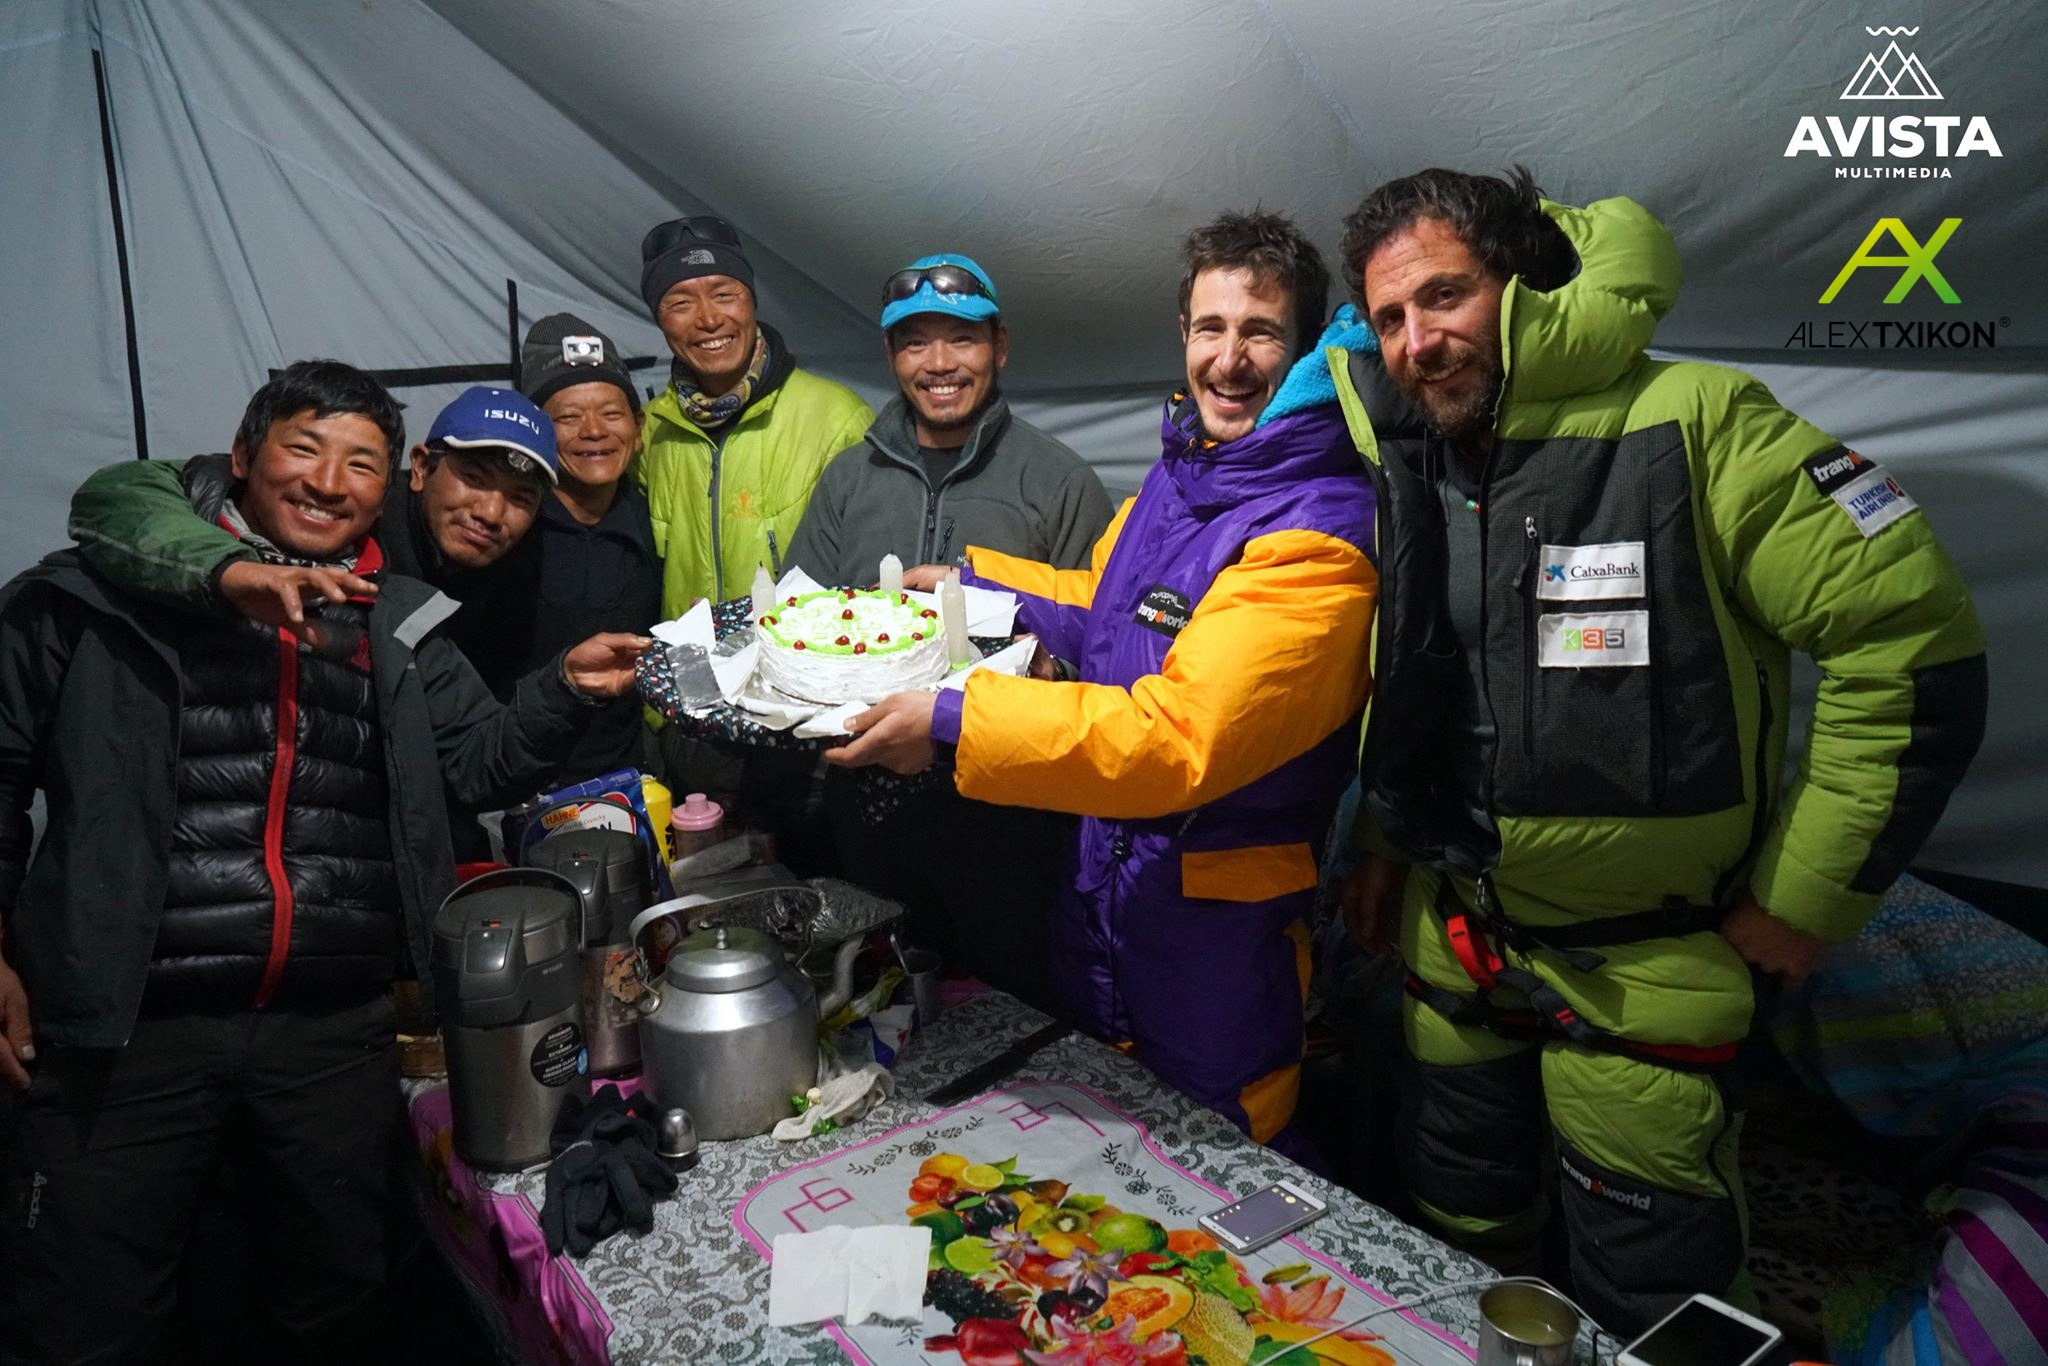 alex-txikon-en-everest-9